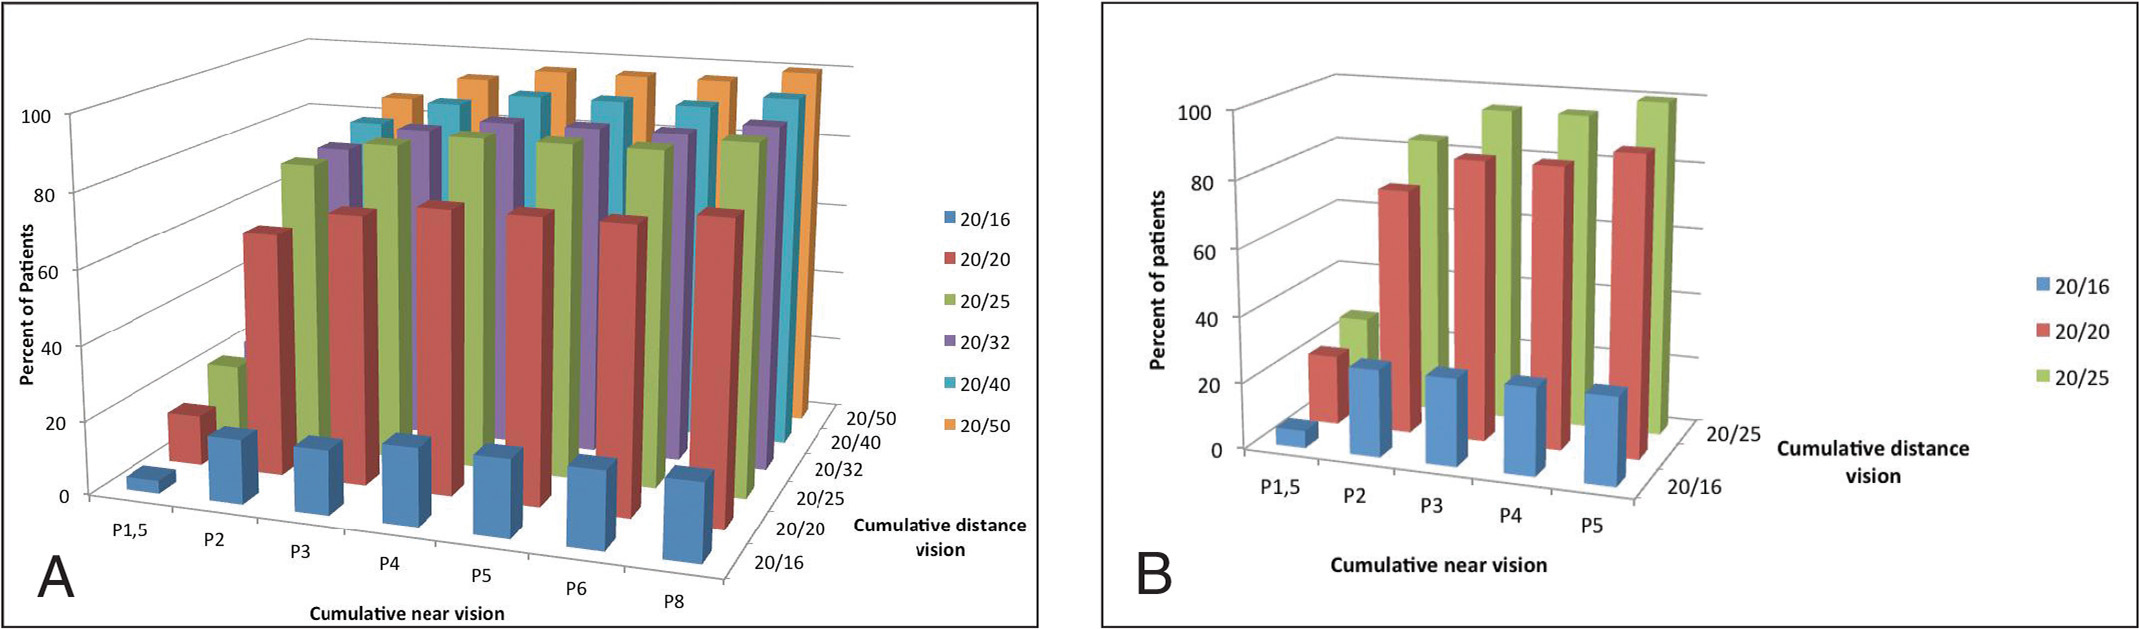 Bar graphs showing cumulative postoperative binocular uncorrected visual acuities (A) 6 months and (B) 1 year after presbyopic corneal treatment using Technolas 217P with the SUPRACOR Regular module (Technolas Perfect Vision, GmbH, Munich, Germany).